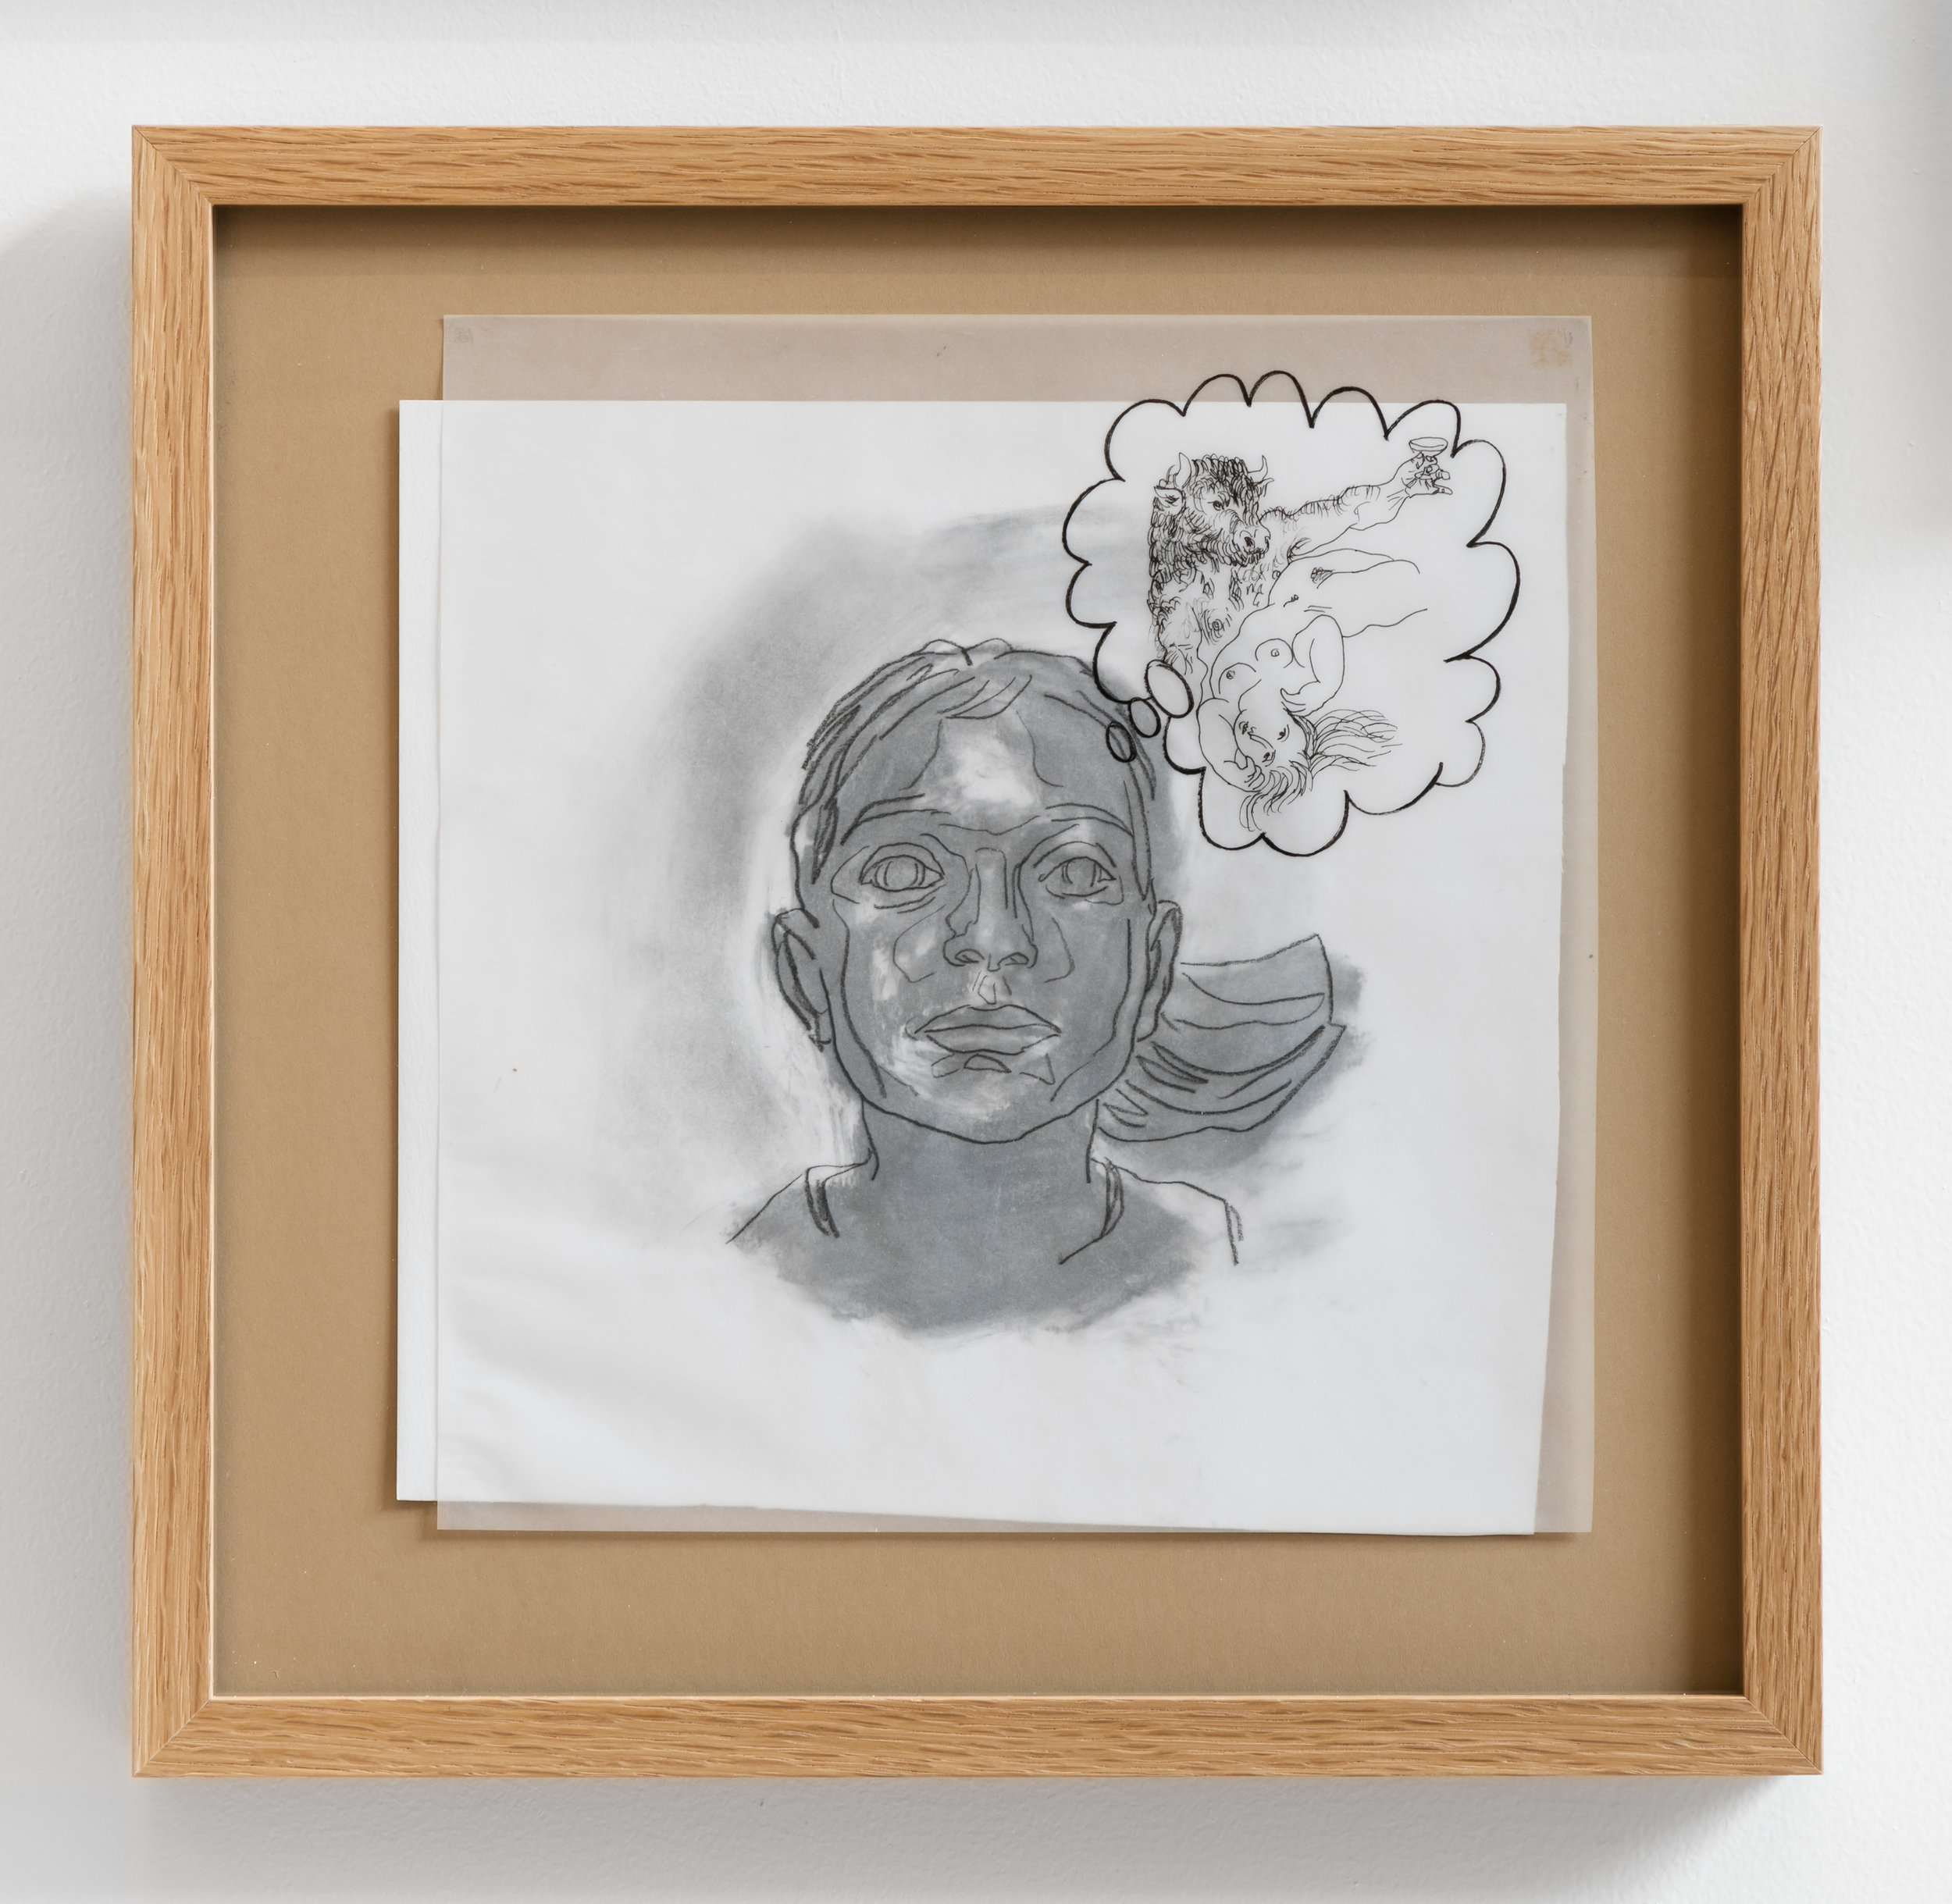 Aura Rosenberg ,   Untitled , 2019, graphite and ink on paper and vellum mounted on archival board, 10 ⅝ × 11 ⅛ inches, 15 ¾ × 16 in.